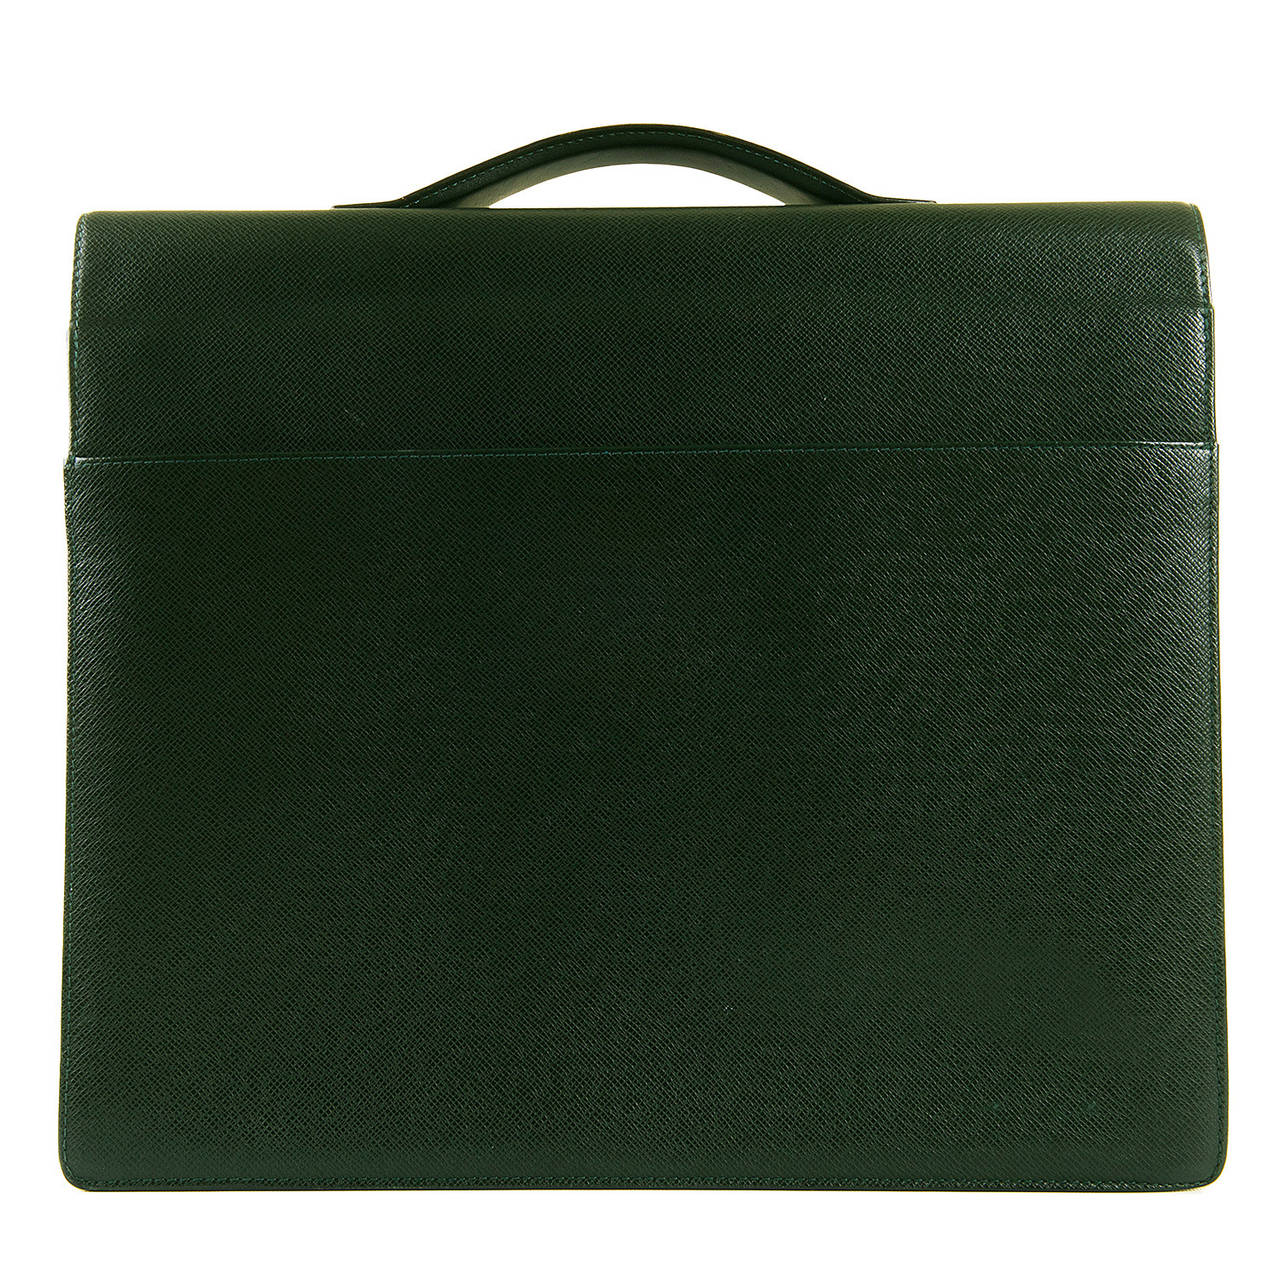 MAN GIFT! Pristine Louis Vuitton 'Tobol' Attache Case in green Taiga Leather 2